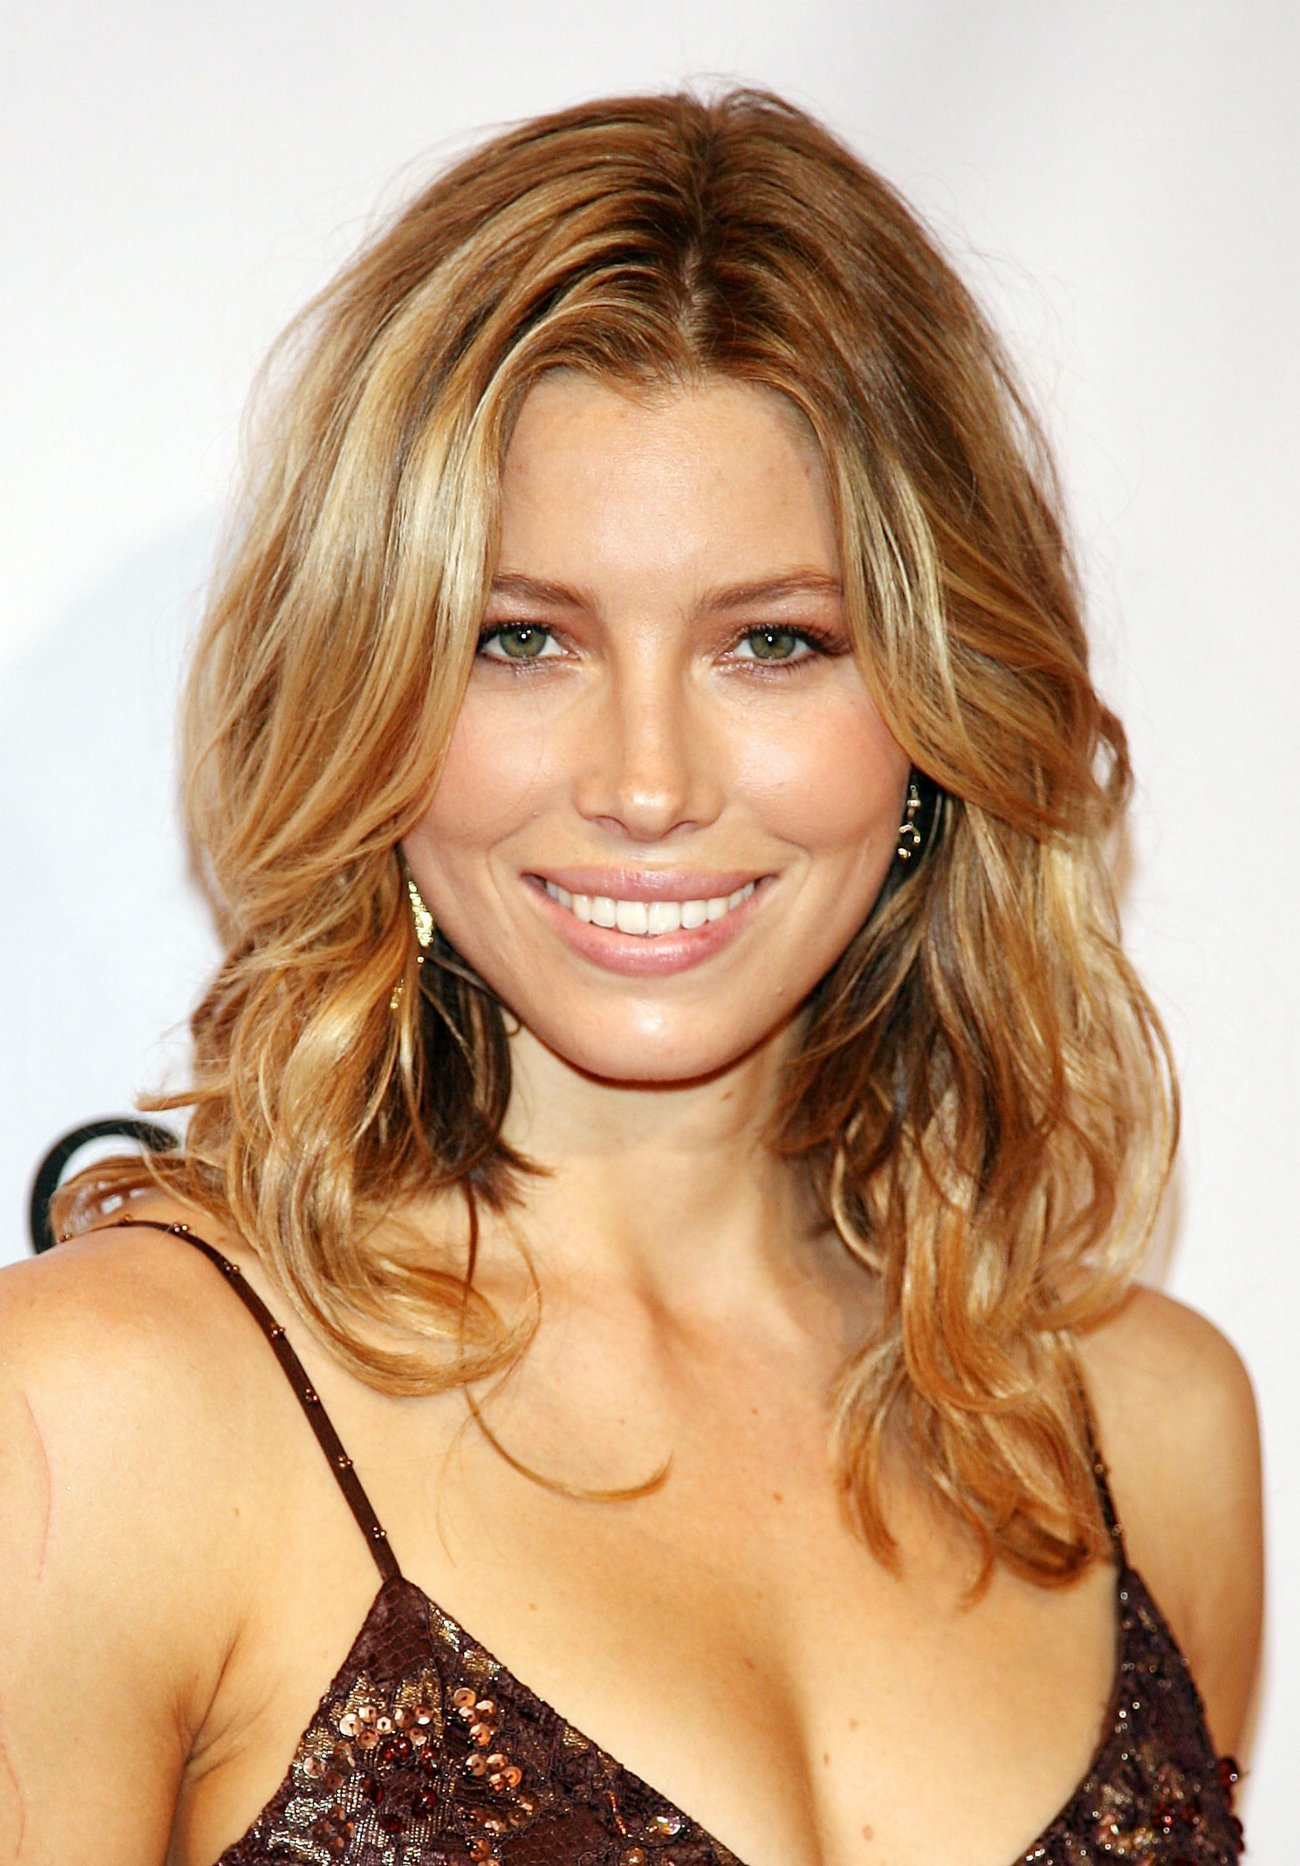 cute smile jessica-biel gorgeous HD Wallpaper